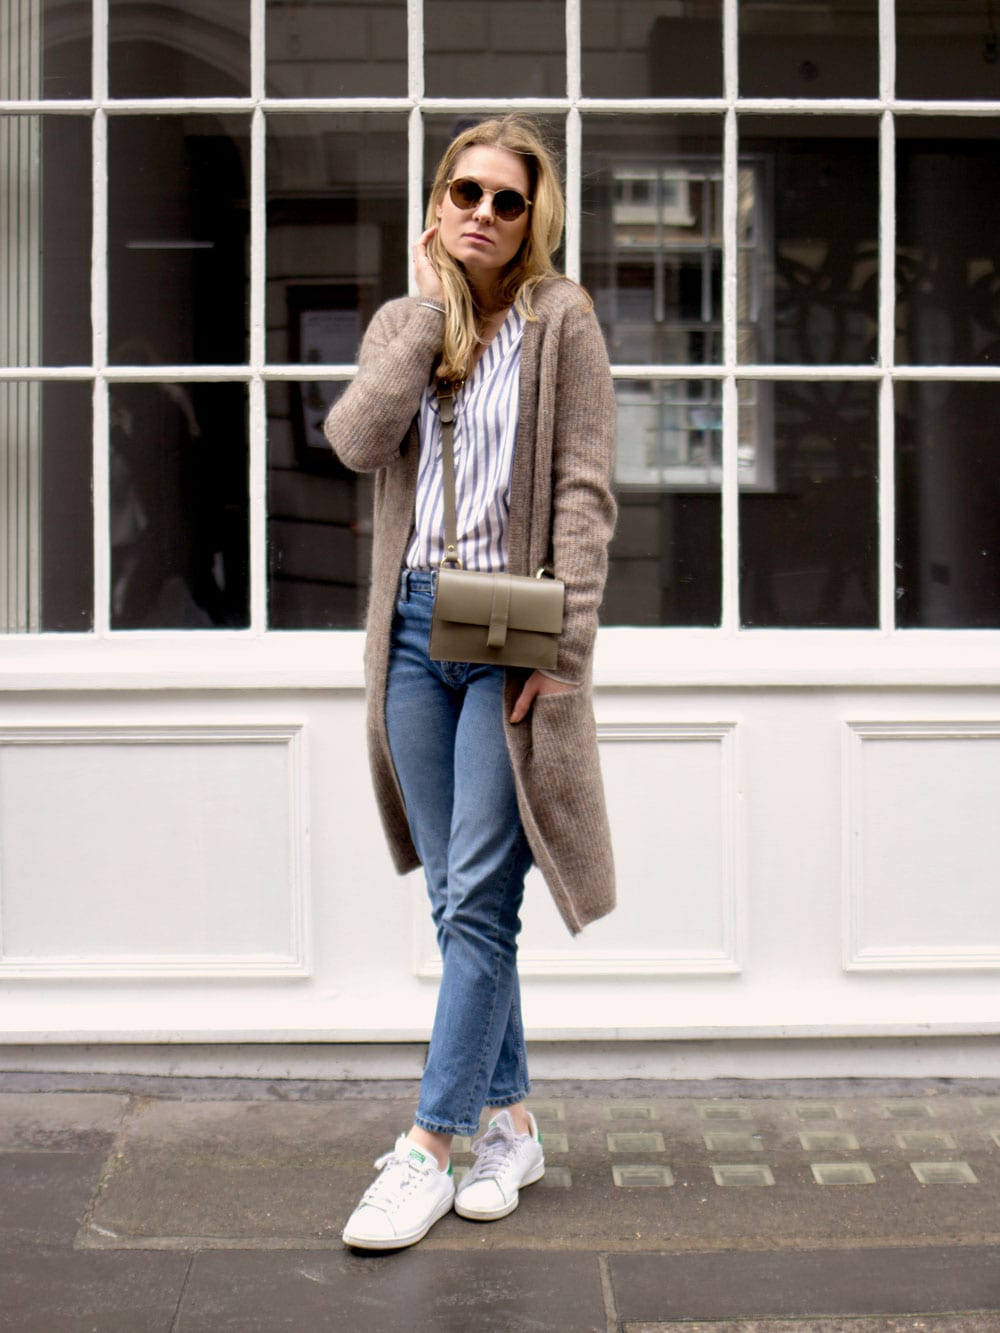 Style&Minimalism | It's Personal | Olaplex at Blue Tit | Second Female Stripe Blouse, Second Female Brown Cardigan, Topshop straight Jeans, Danielle Foster Charlie Bag and Ace & Tate Sunglasses